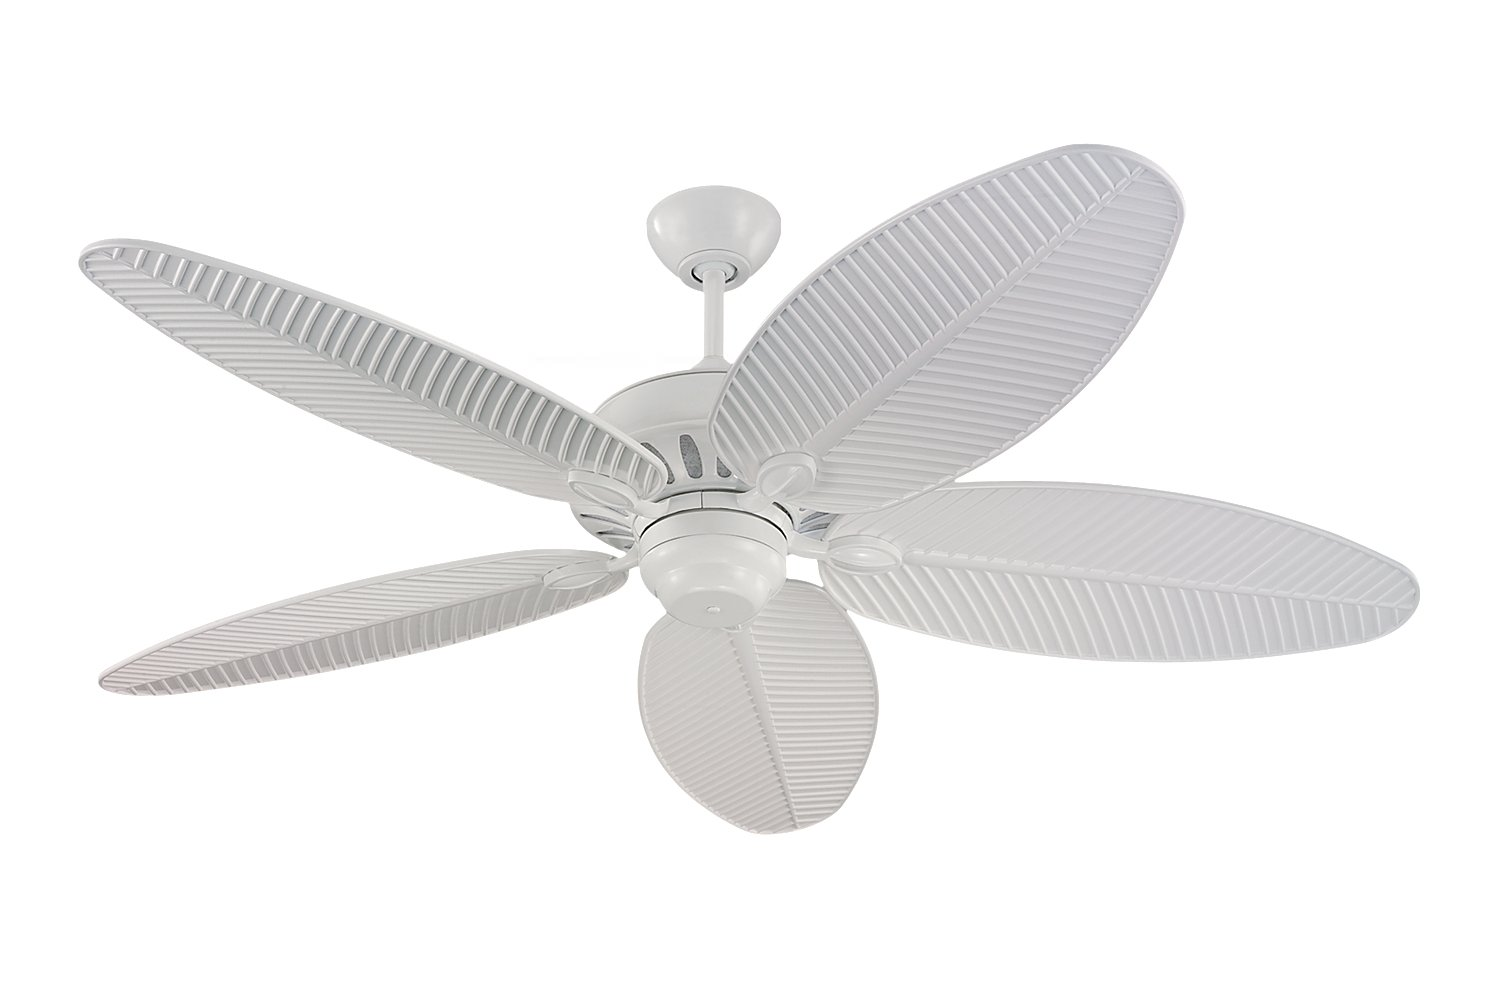 Monte carlo 5cu52wh cruise 52 ceiling fan white amazon aloadofball Image collections